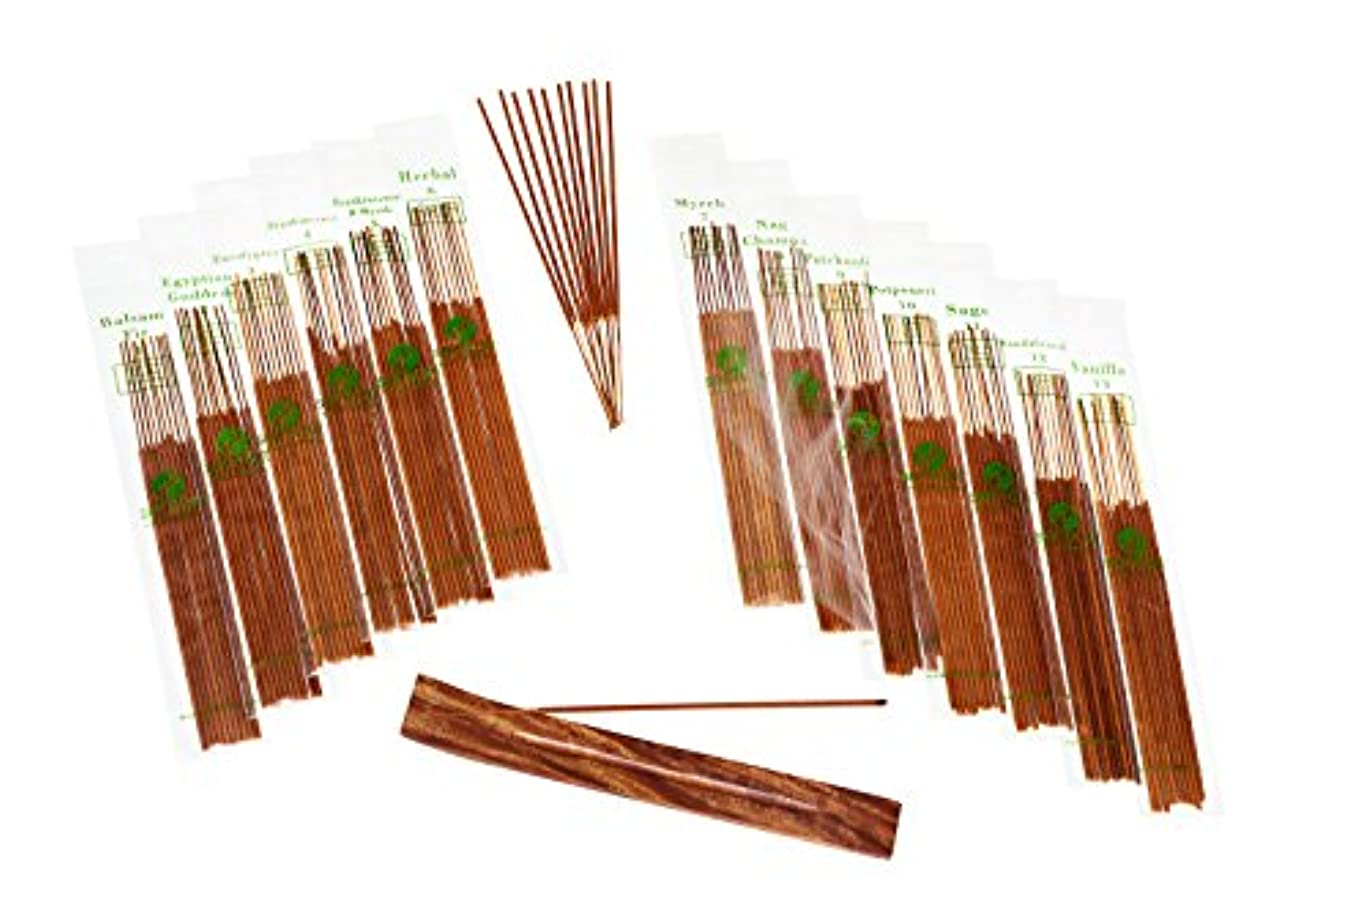 故意に引退する広々SENSARI HAND-DIPPED INCENSE & BURNER GIFT SET - 120 Stick Variety, 12 Scent Assortment - Nag Champa, Sandalwood...